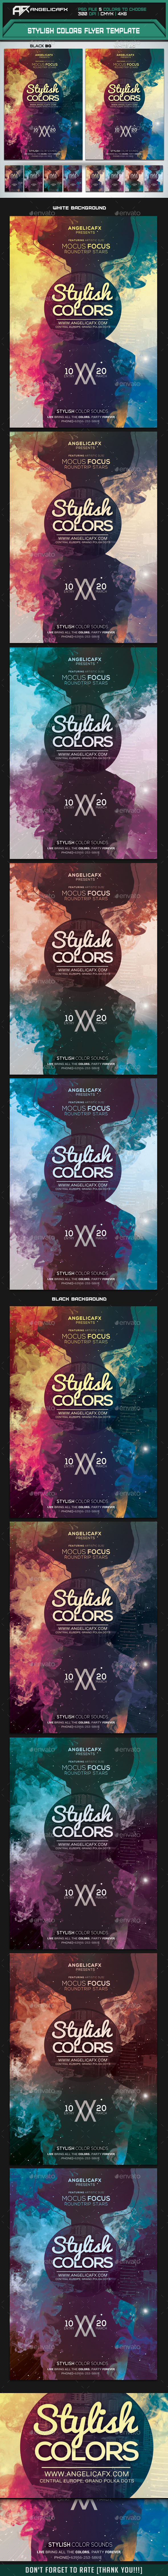 GraphicRiver Stylish Colors Flyer Template 10250395